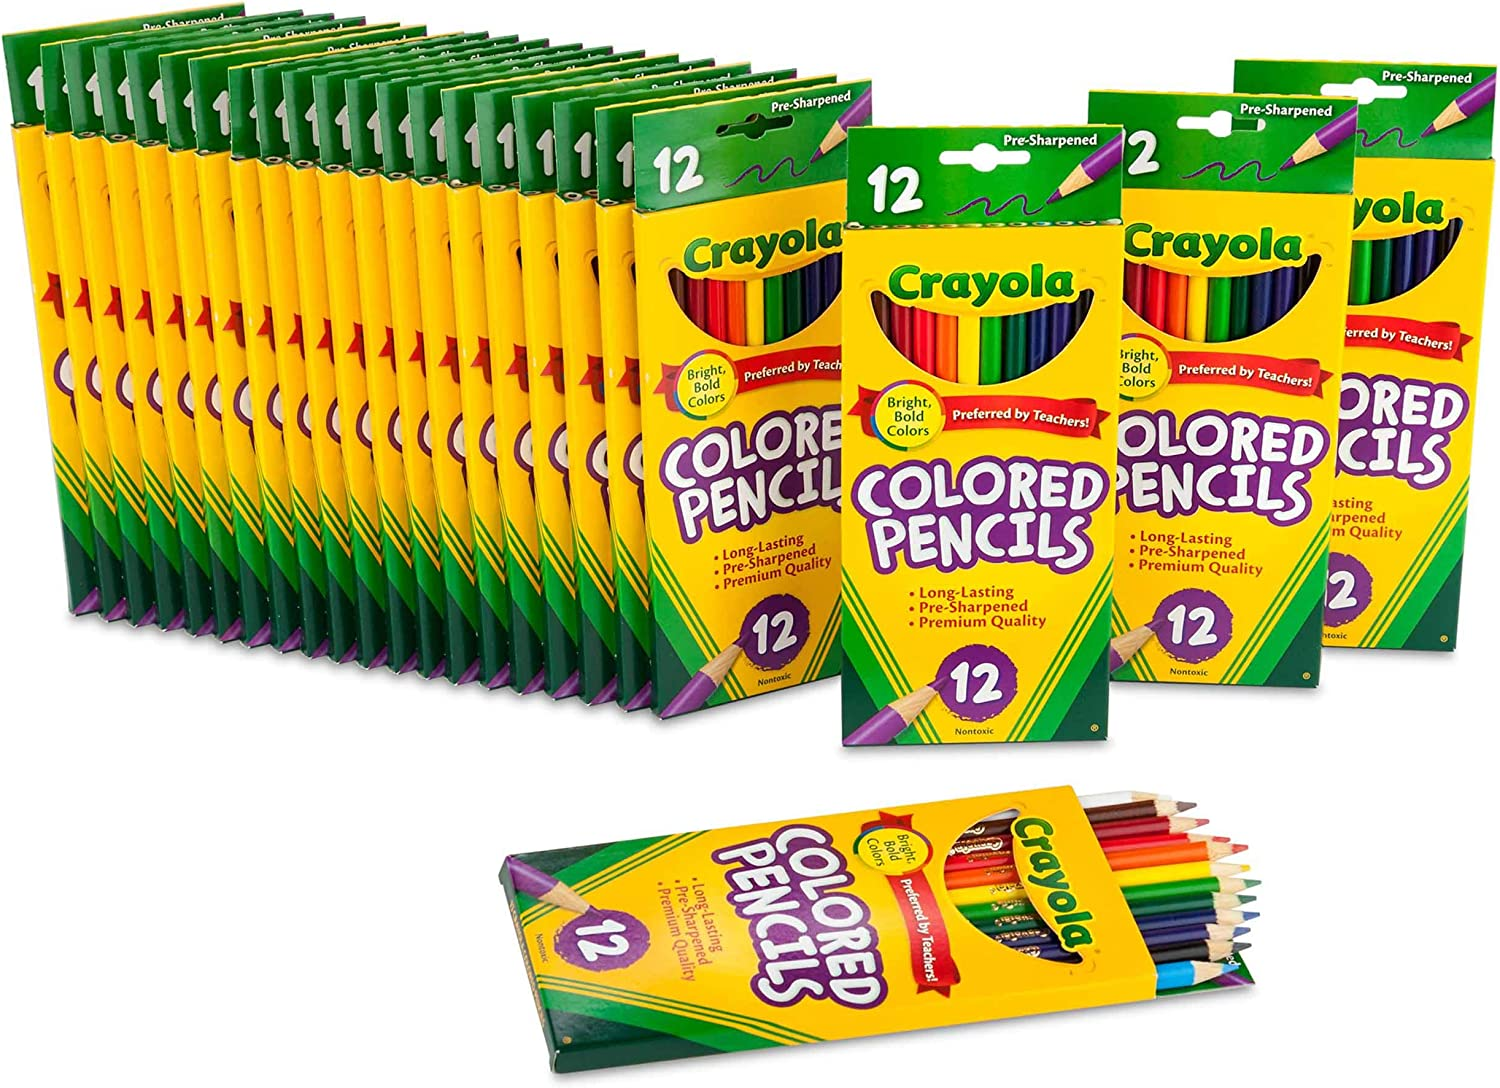 Crayola Bulk Colored Pencils, Pre-sharpened, 12 Assorted Colors, Pack of 24: Toys & Games